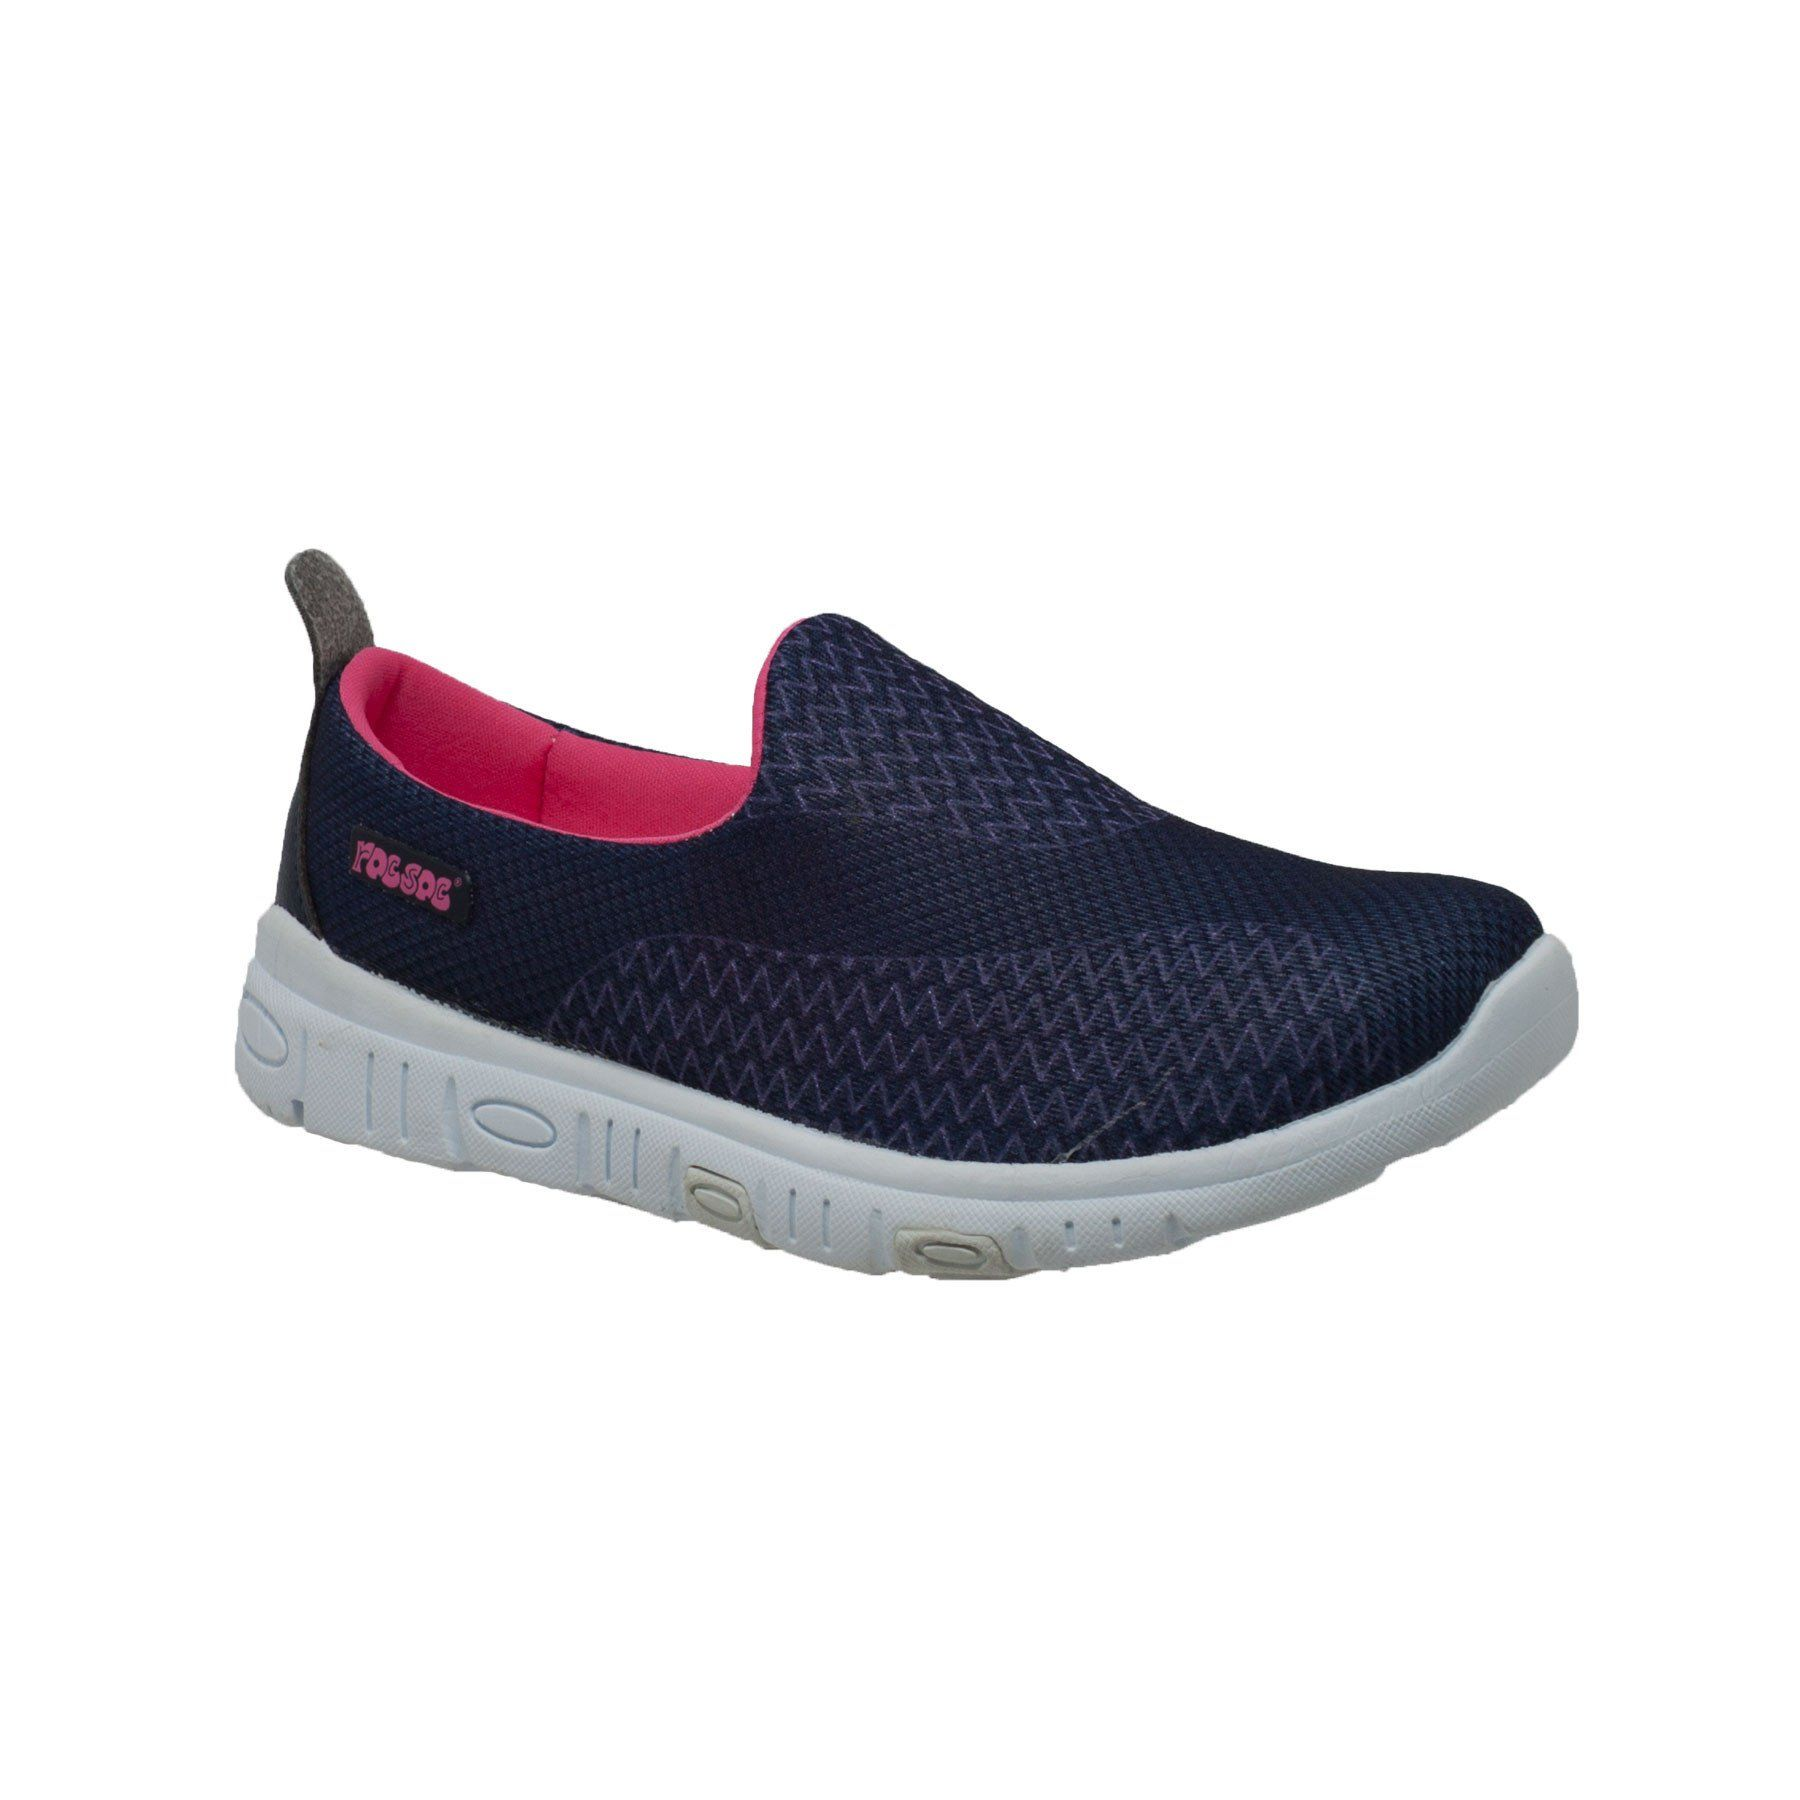 304d13bb3c99 Women s Comfort Stride Navy Raspberry - Footwear